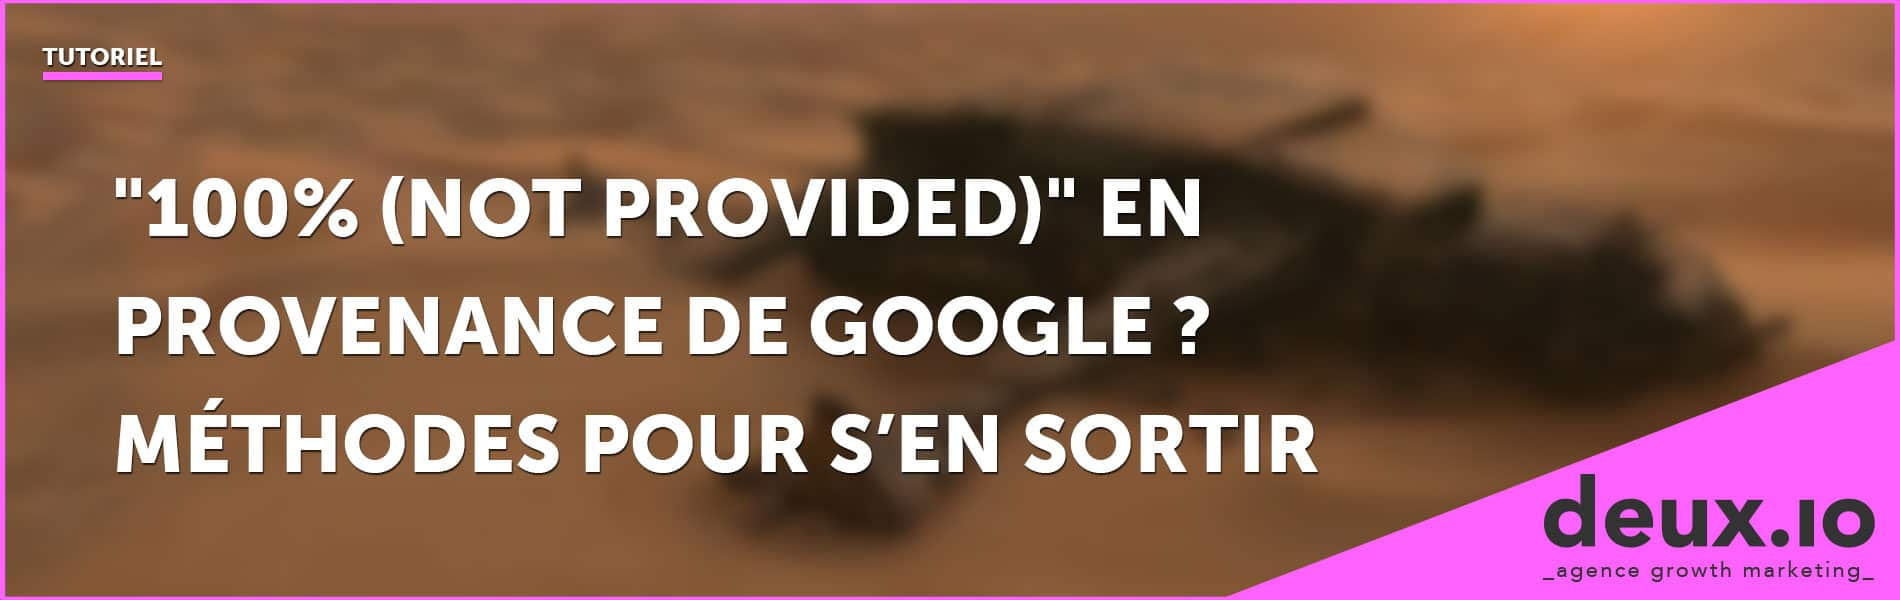 100% not provided en provenance de google méthodes pour s'en sortir